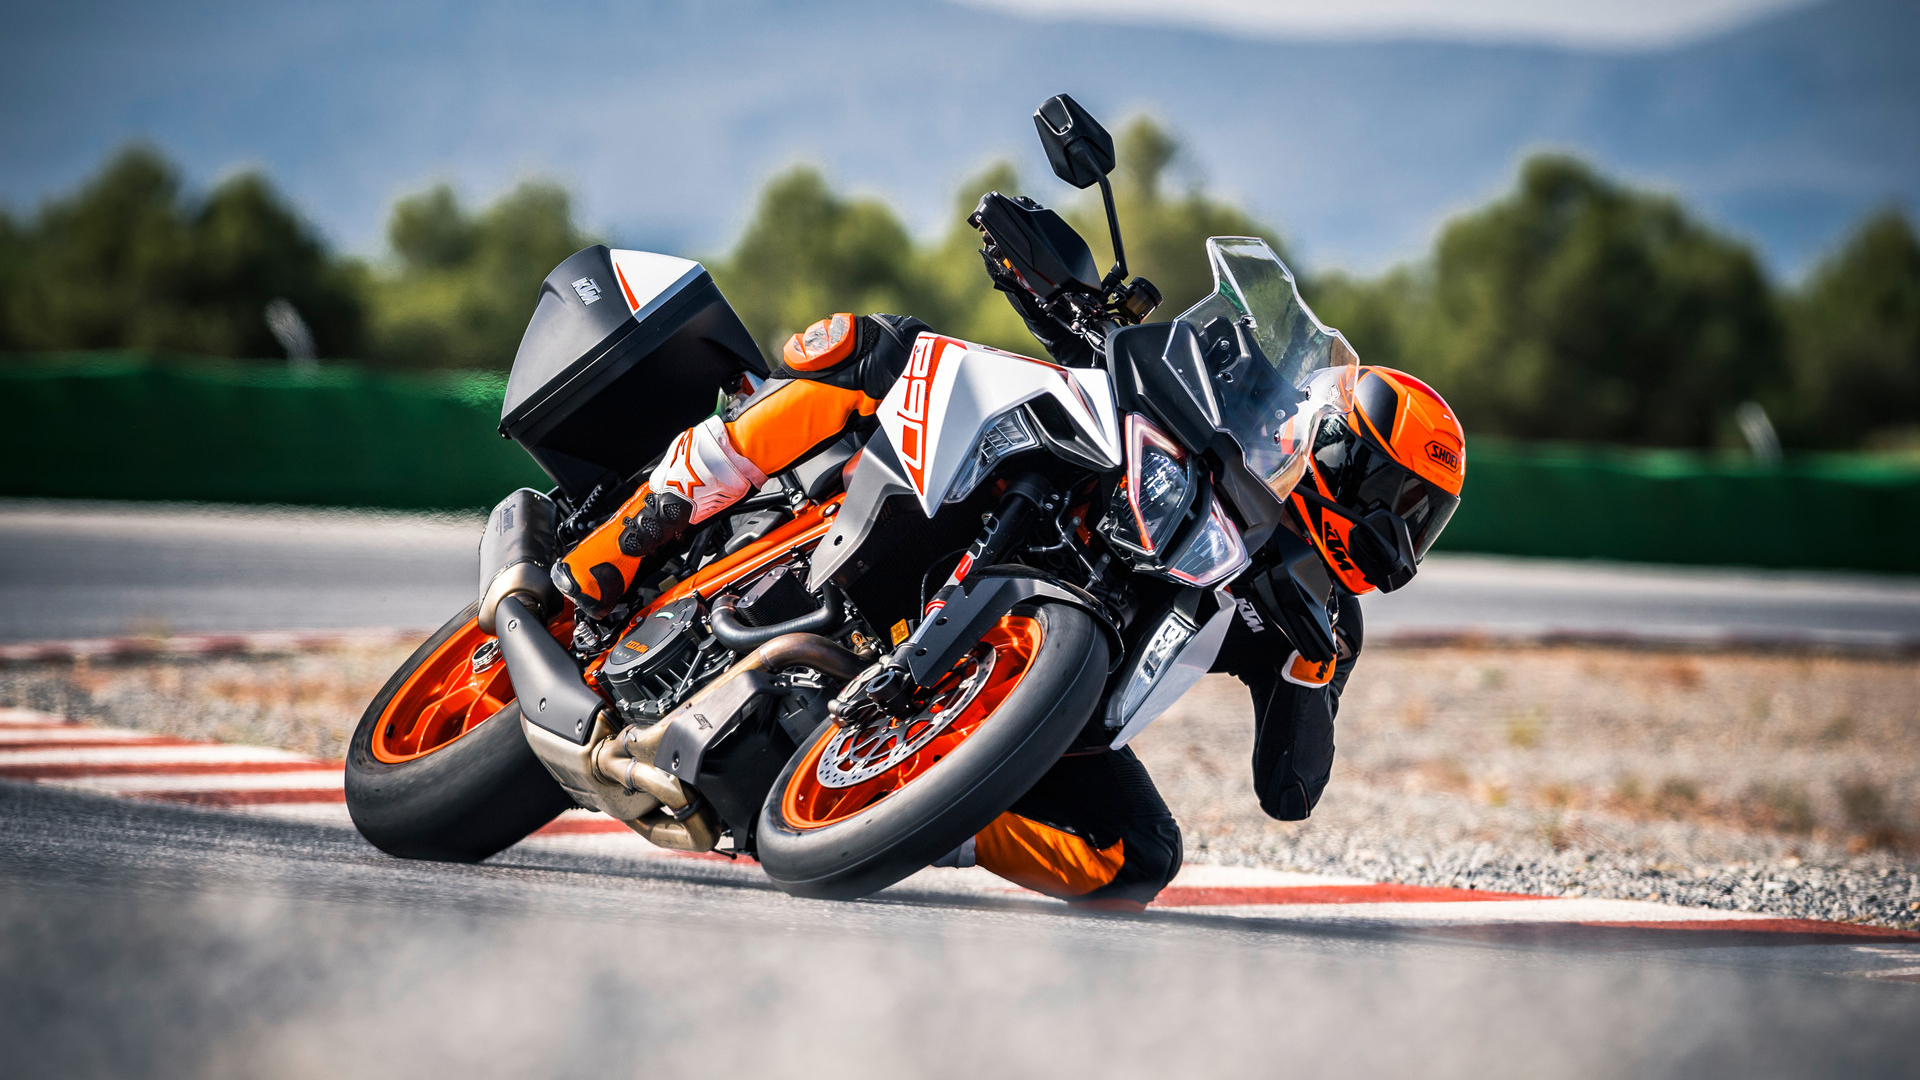 2019 Ktm 1290 Super Duke Gt Pictures Photos Wallpapers